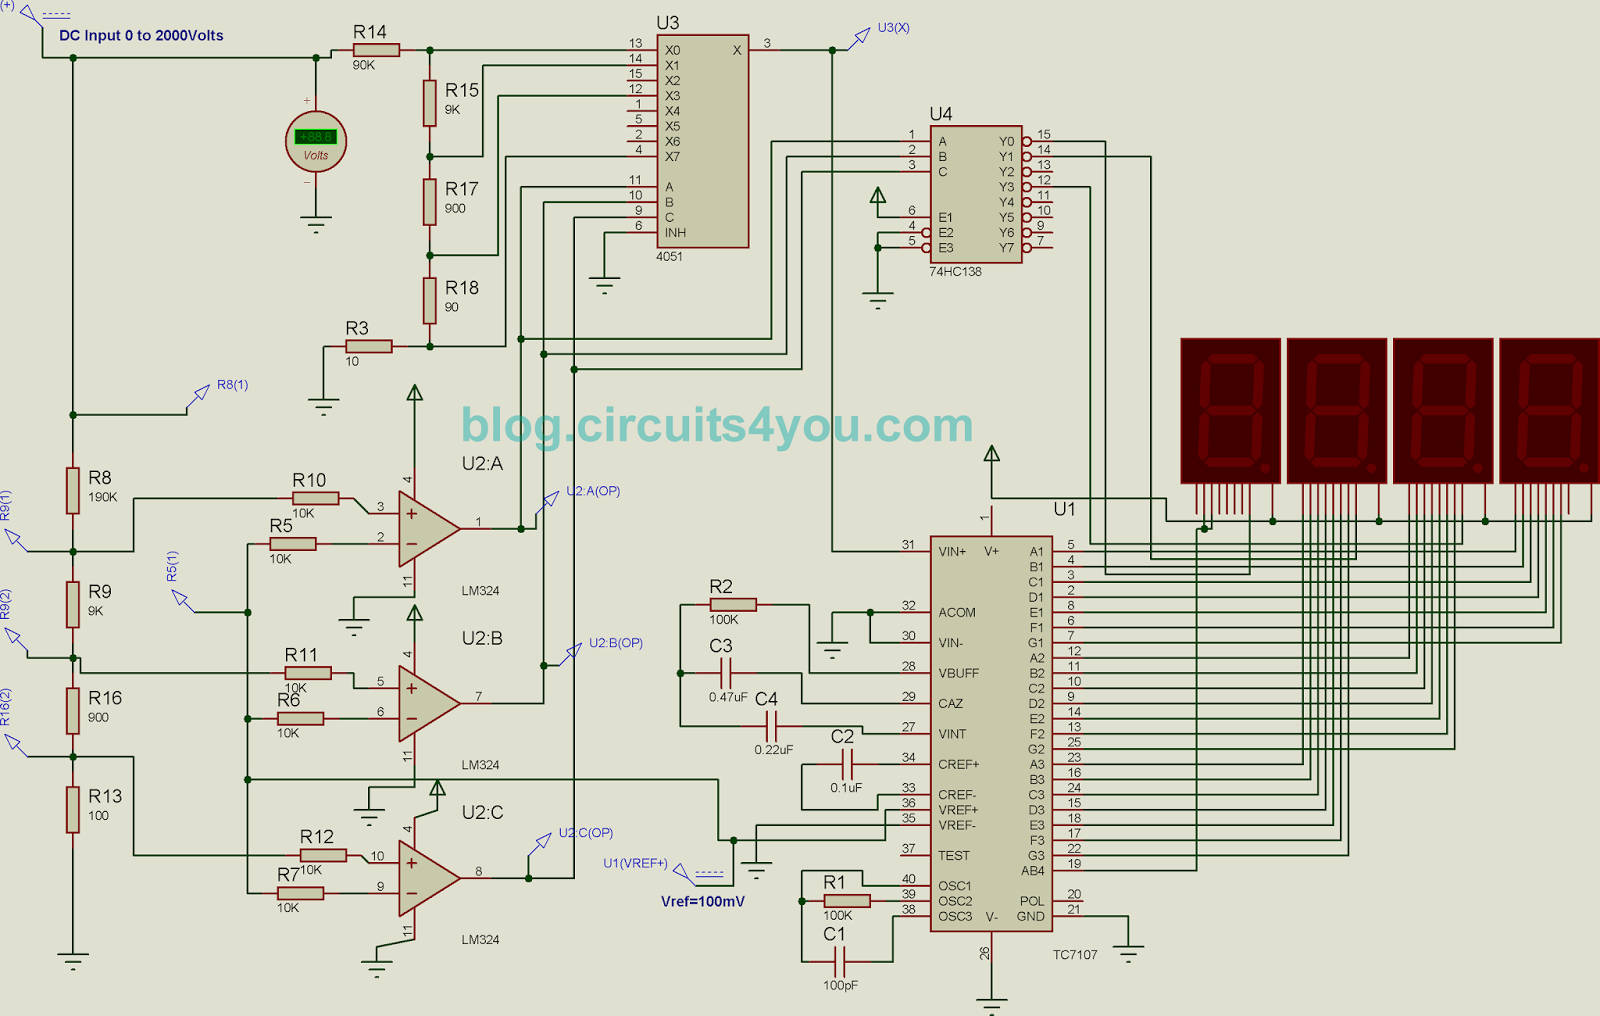 Autoranging Circuit Schematic Diagram Not Lossing Wiring Wwwseekiccom Circuitdiagram Controlcircuit Icl7135adconverter Circuits4you Com Icl7107 Autorange Voltmeter Rh Blog Home Electrical Diagrams